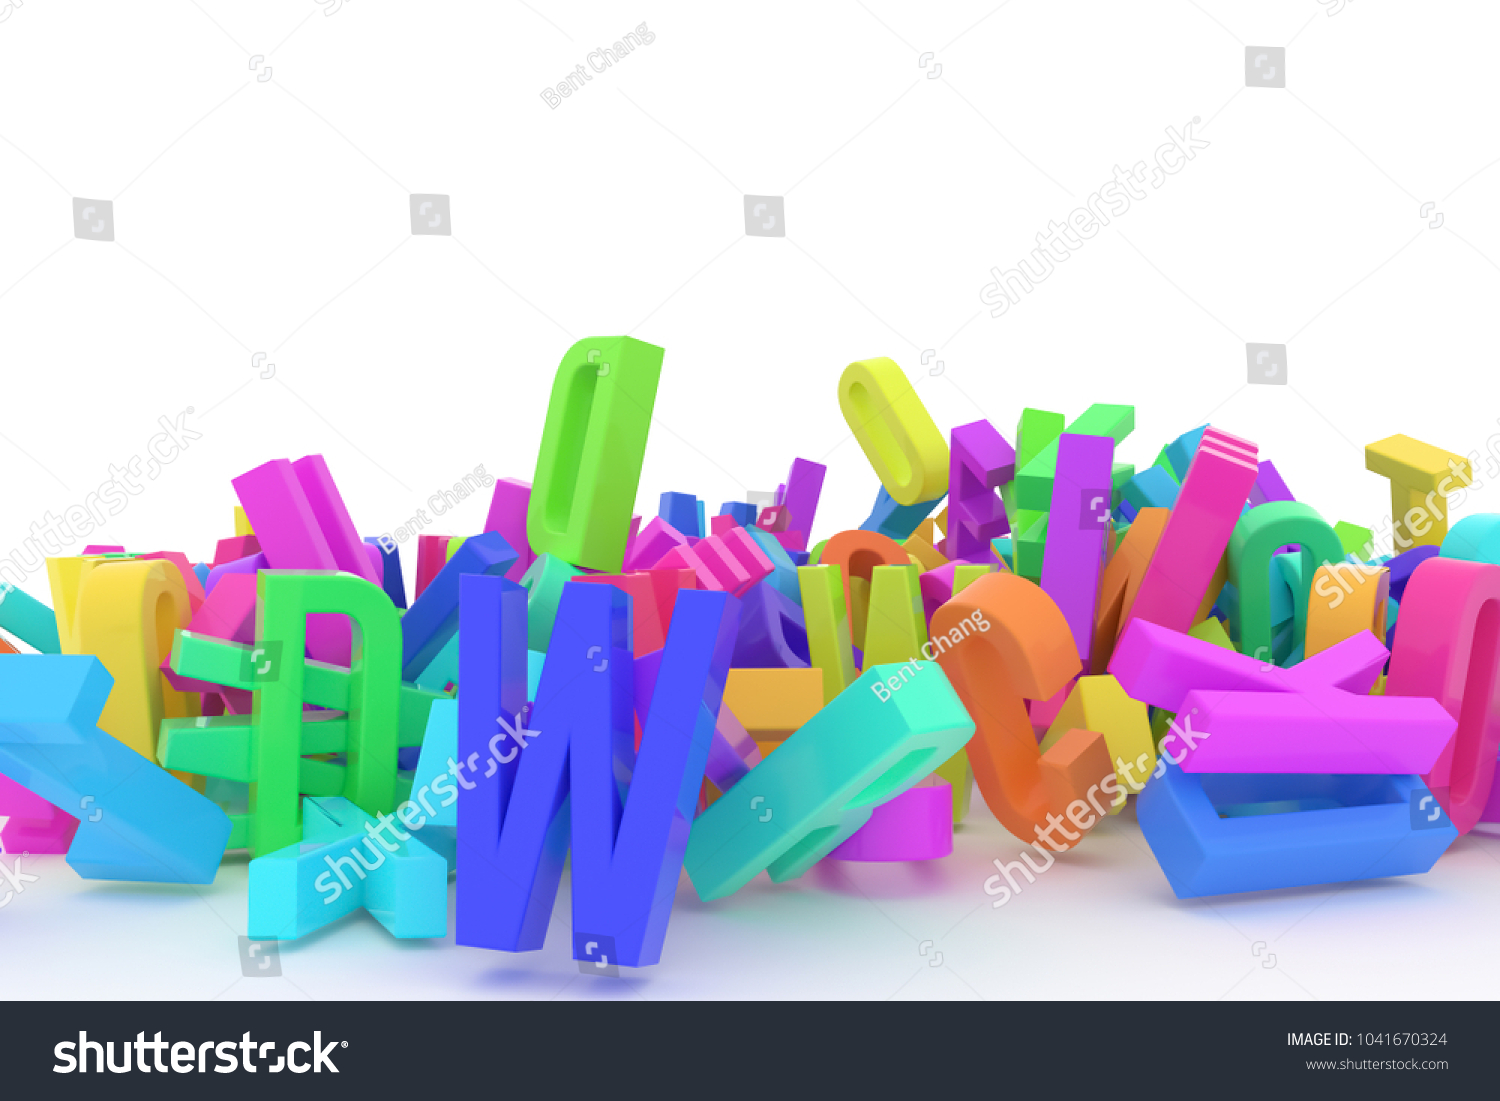 stack of colorful alphabets letters from a to z for education or